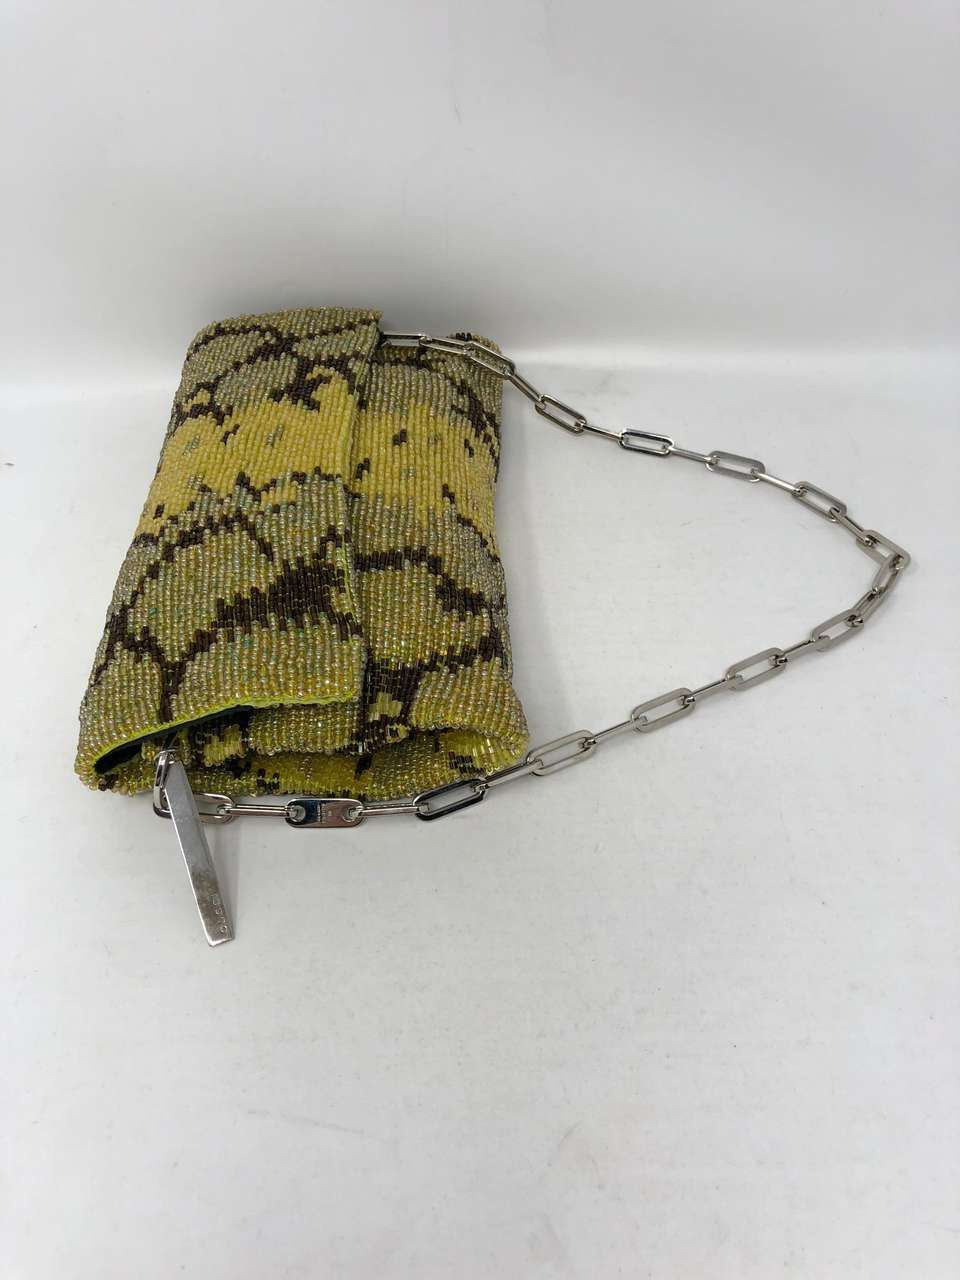 609cb1c3d448 For Sale on 1stdibs - Gucci evening bag designed by Tom Ford. Handmade and  beaded purse with exquisite details. The beading creates a snakeskin look.